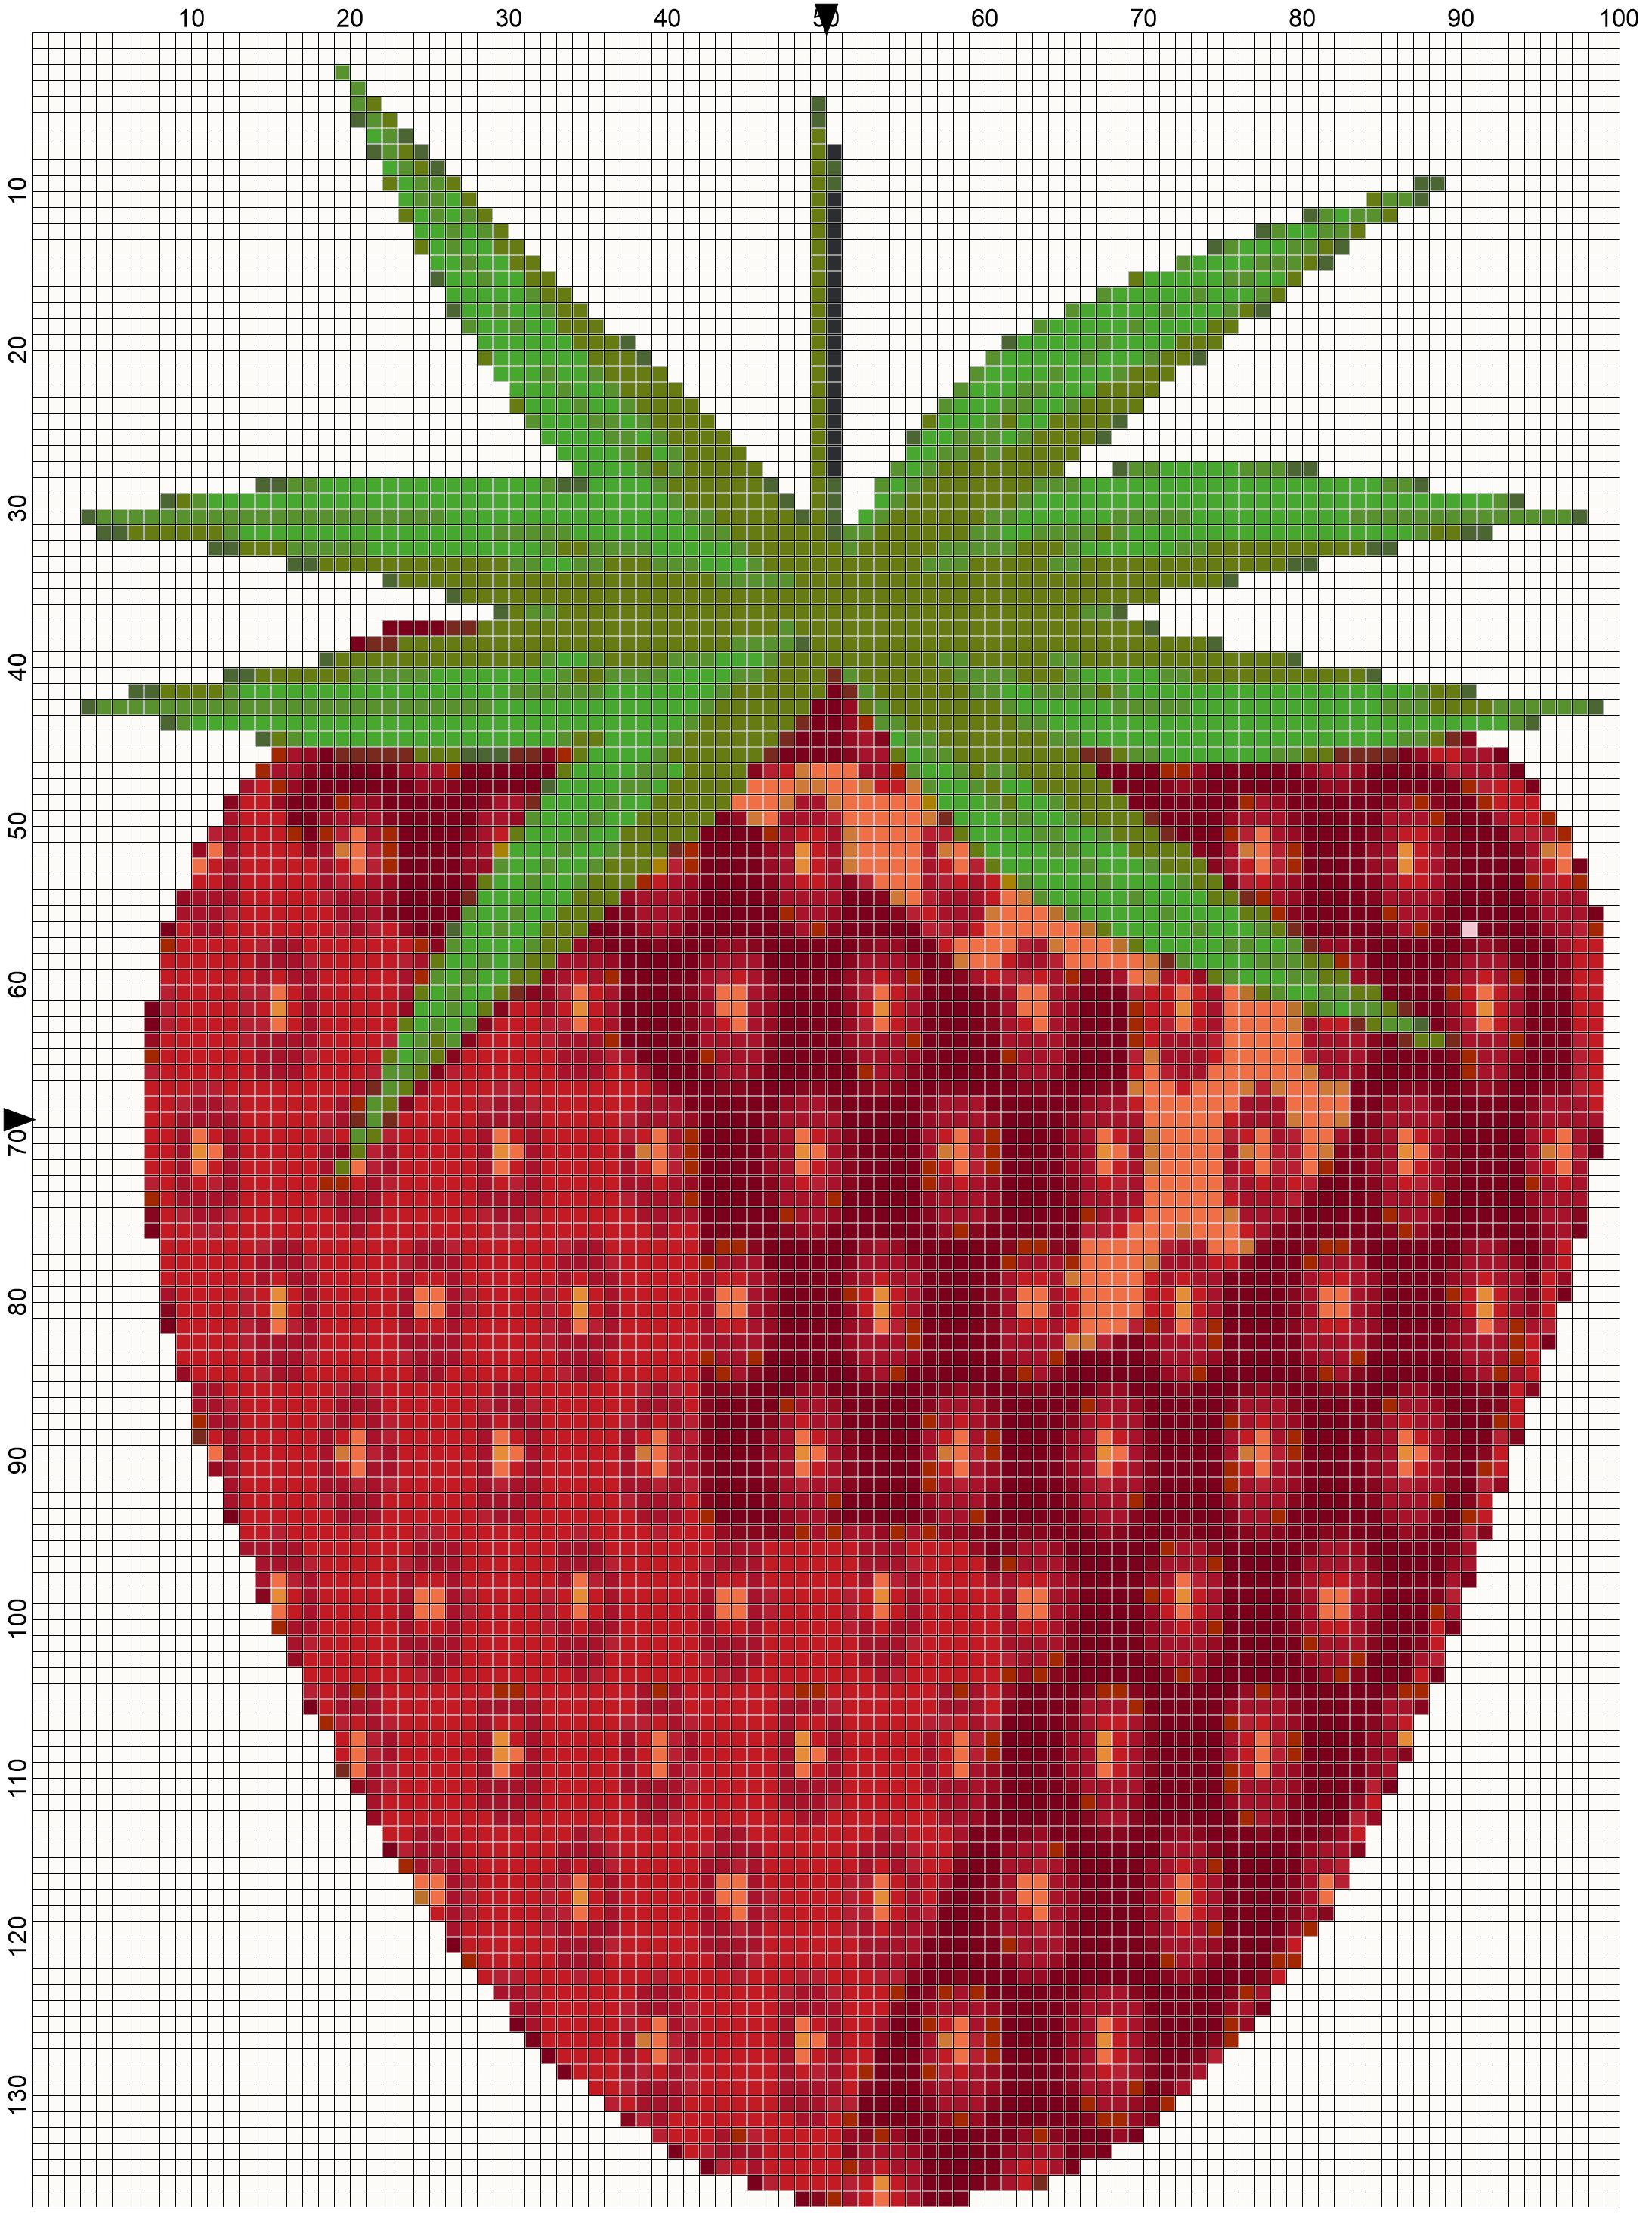 Day 20 of 30 days with Strawberry: Make a Strawberry Cross Stitch ...